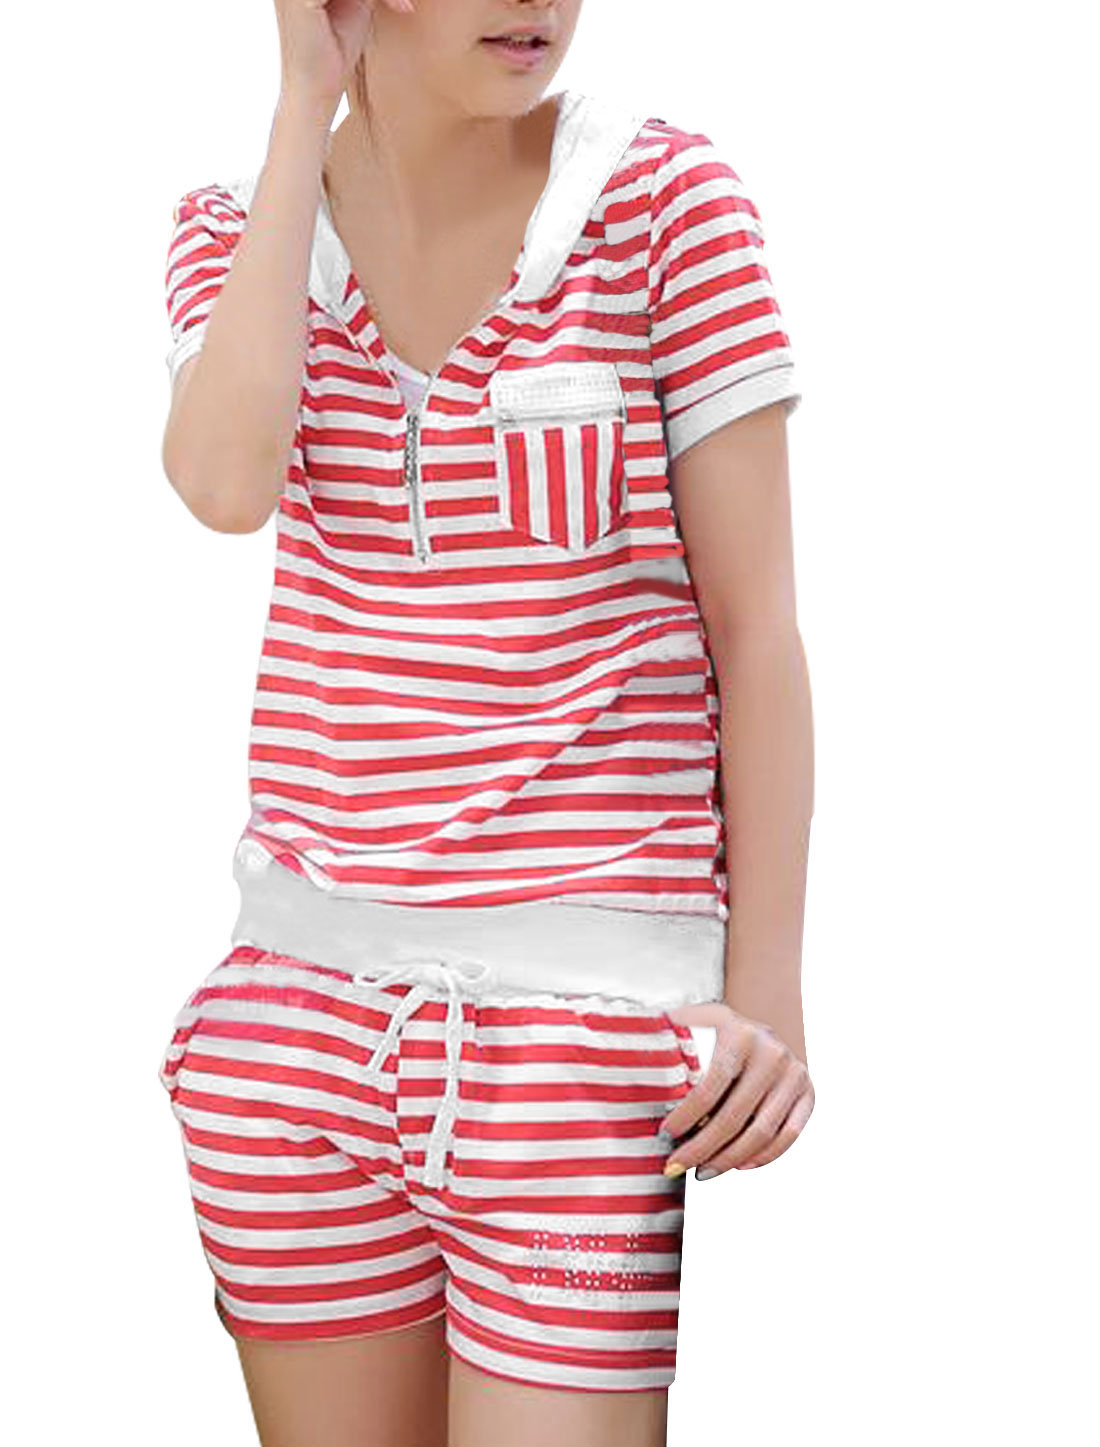 Women Bust Pocket Thin Hooded Top w Ribbed Waist Shorts Red White XS